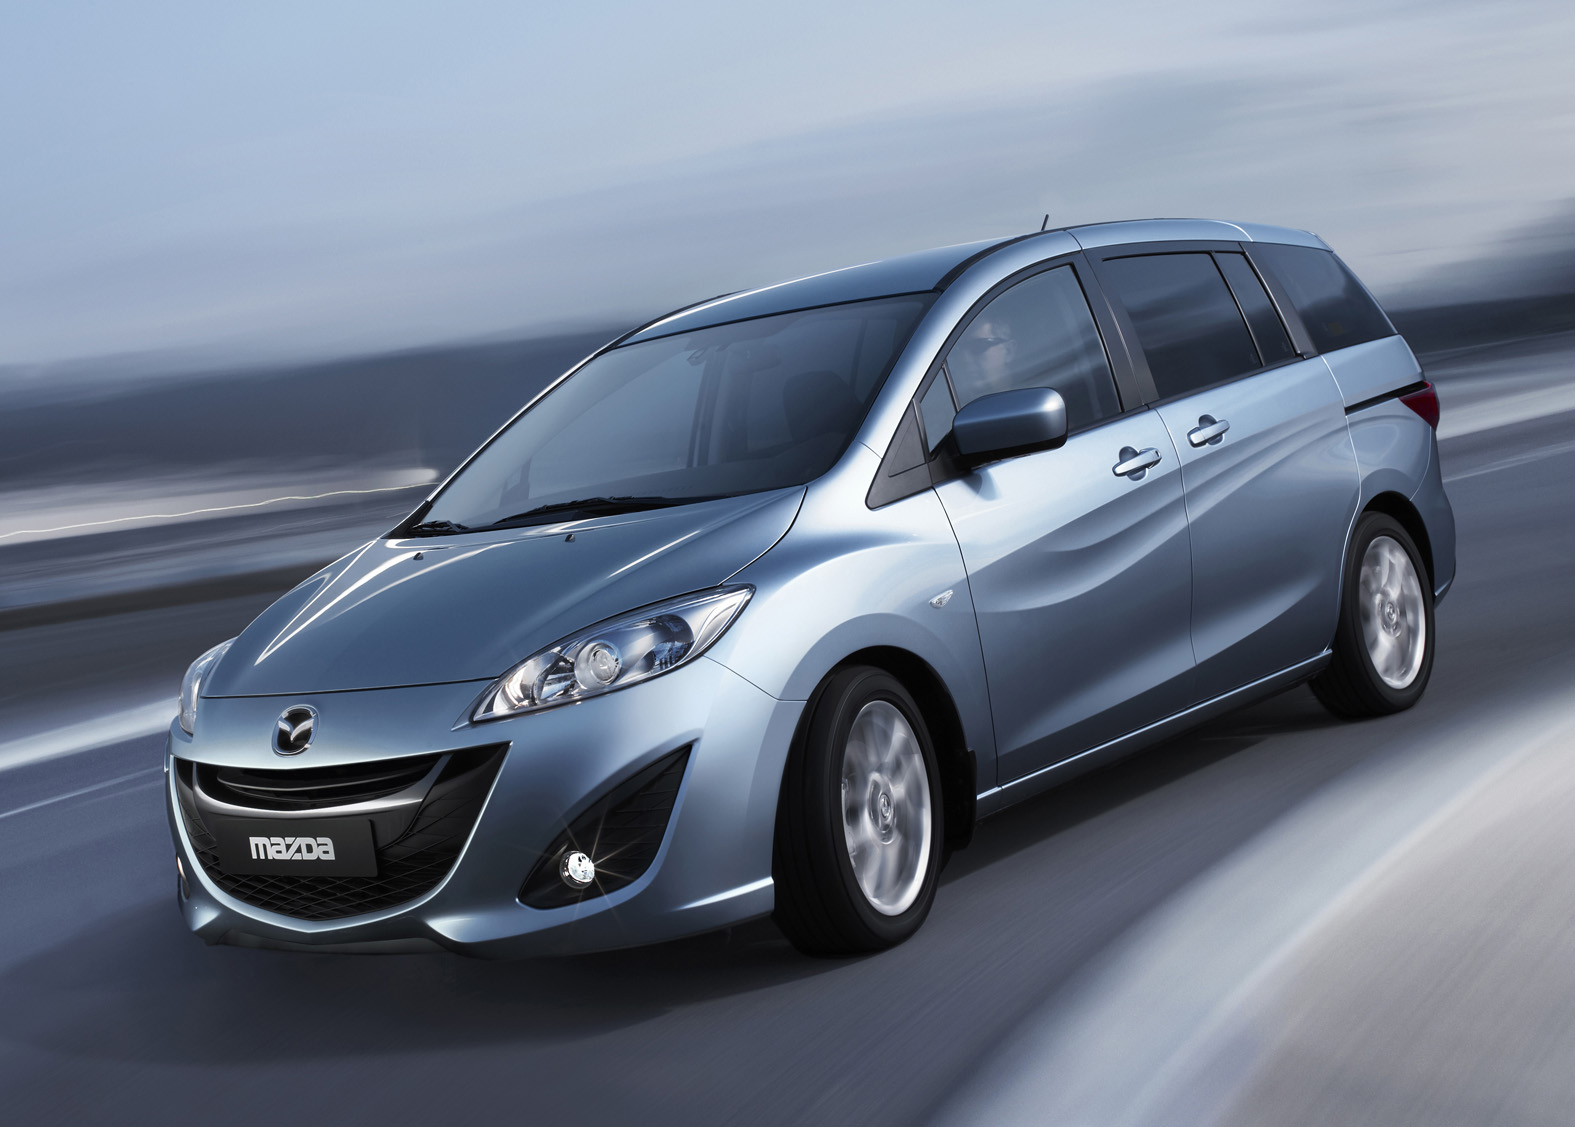 2011 Mazda 5 - Official Photos and Info - Car and Driver